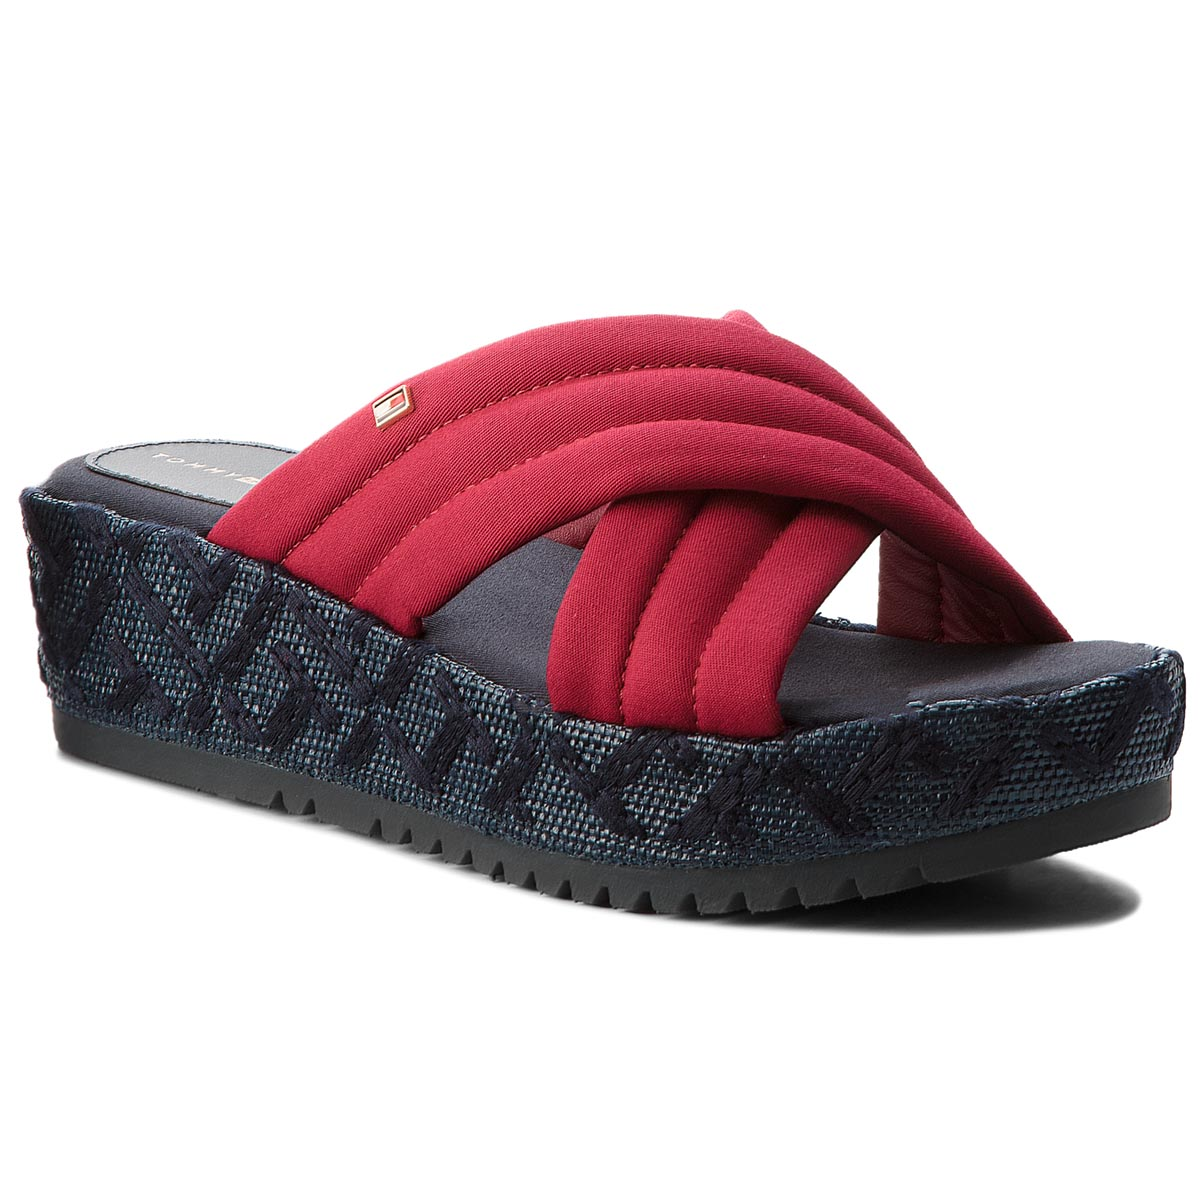 Klapki TOMMY HILFIGER - Th Pattern Flatform FW0FW02785 Scooter Red 614